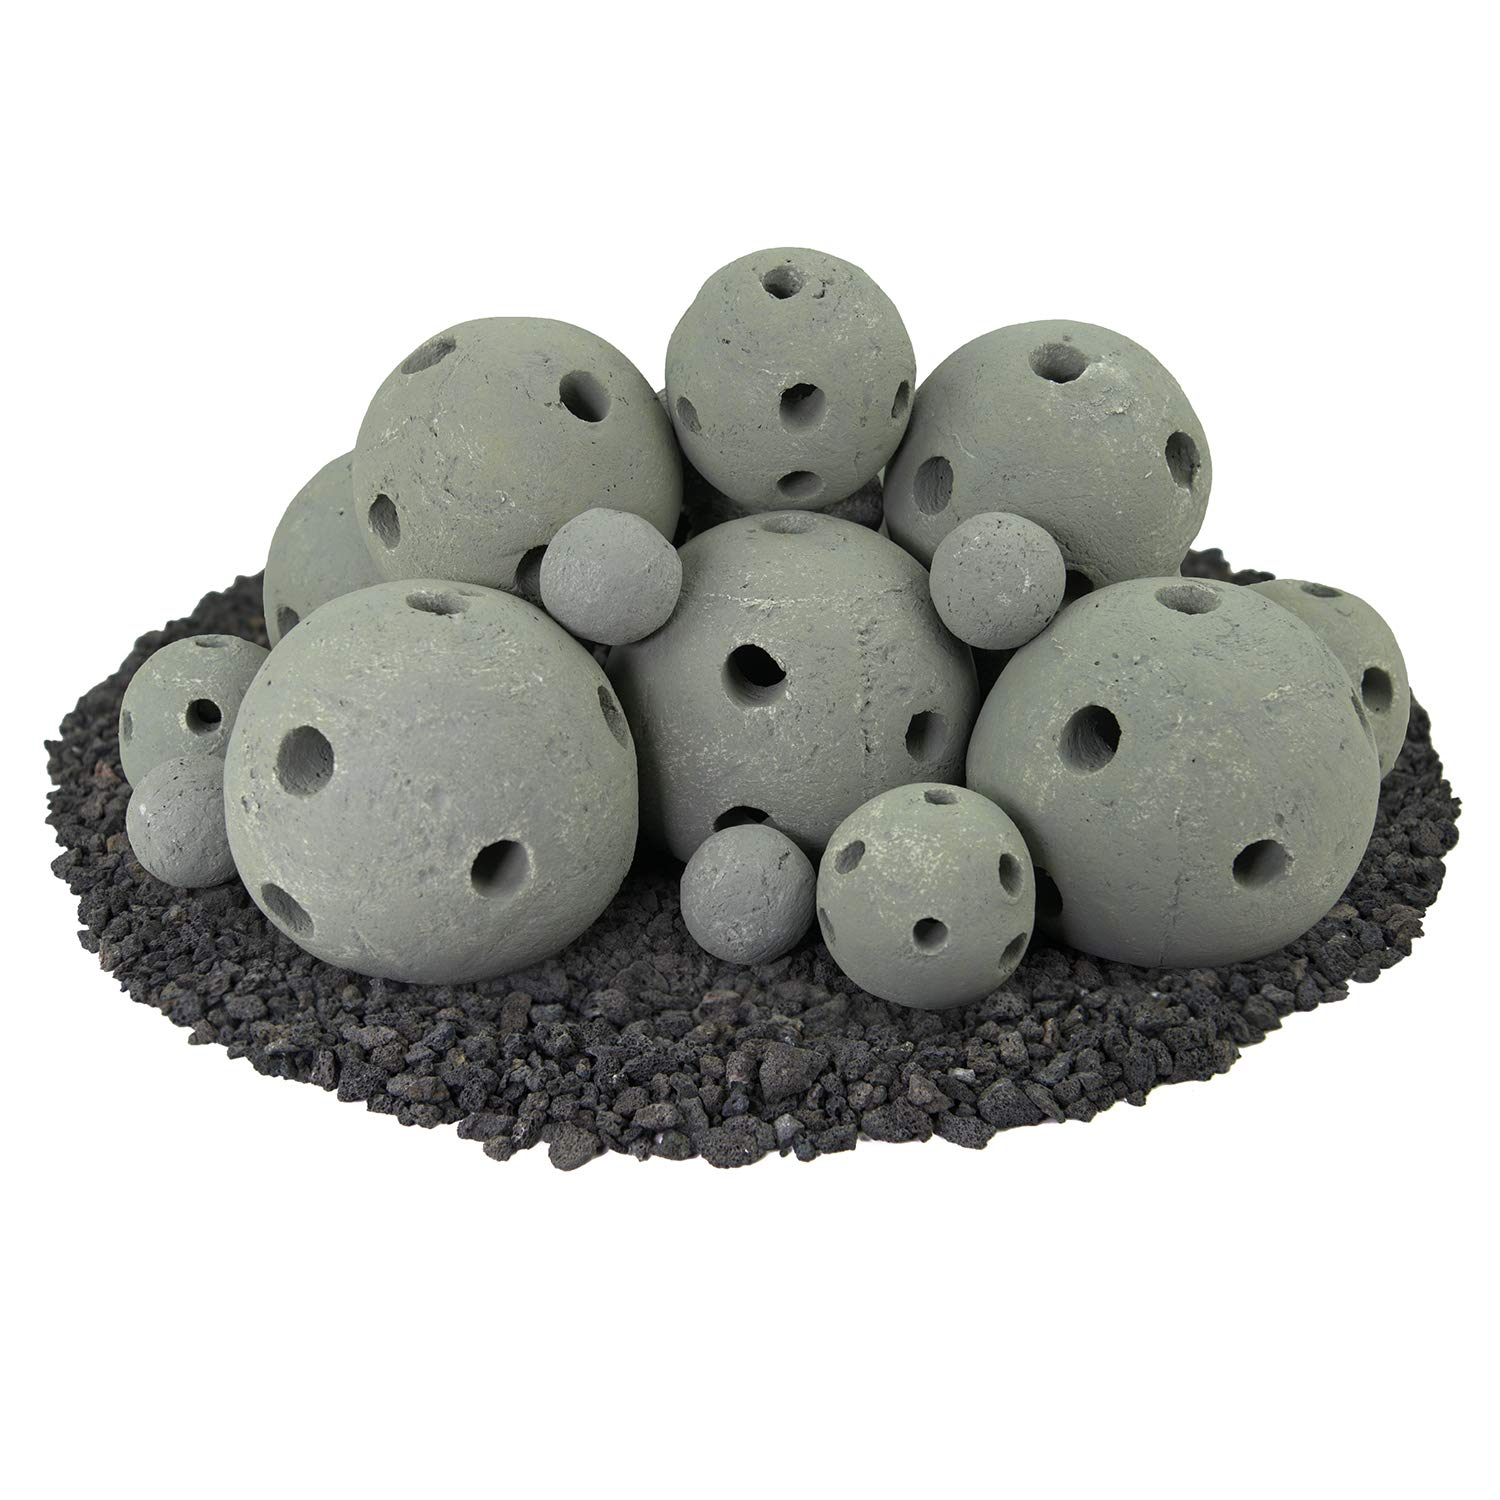 Hollow Ceramic Fire Balls   Mixed Set of 23   Modern Accessory for Indoor and Outdoor Fire Pits or Fireplaces – Brushed Concrete Look   Pewter Gray